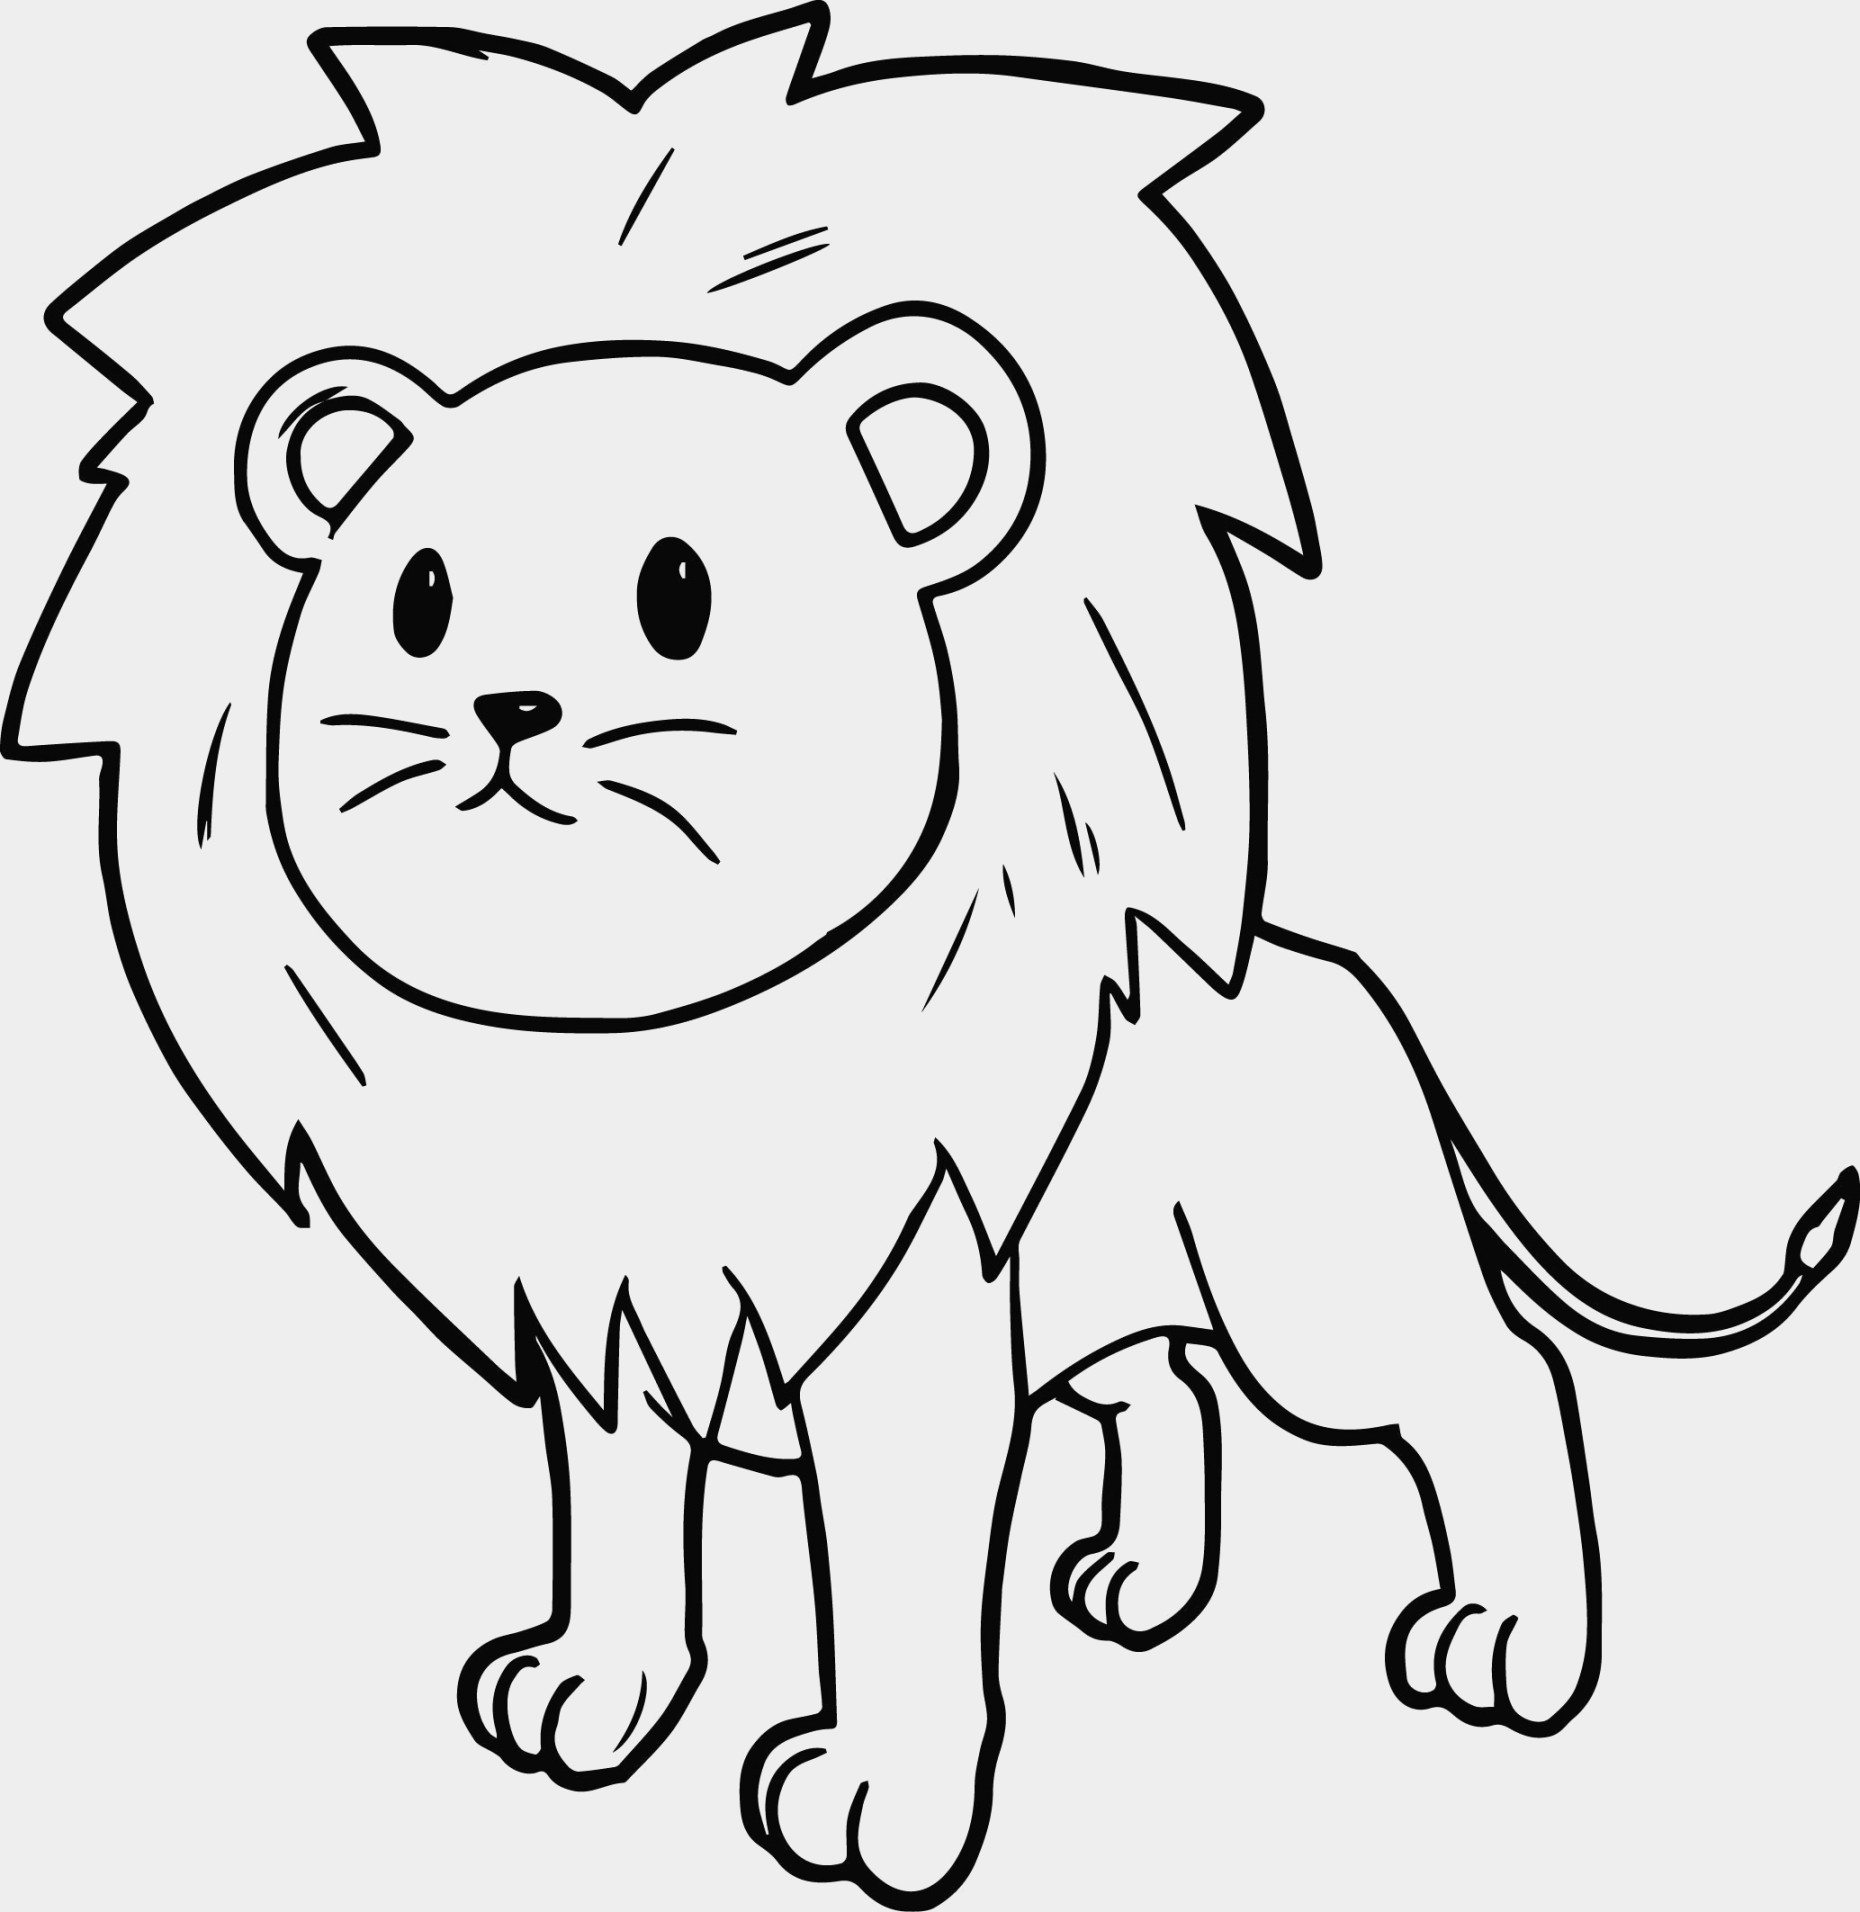 1860x1912 Cartoon Lion Coloring Pages New Lion Cartoon Colouring Pages